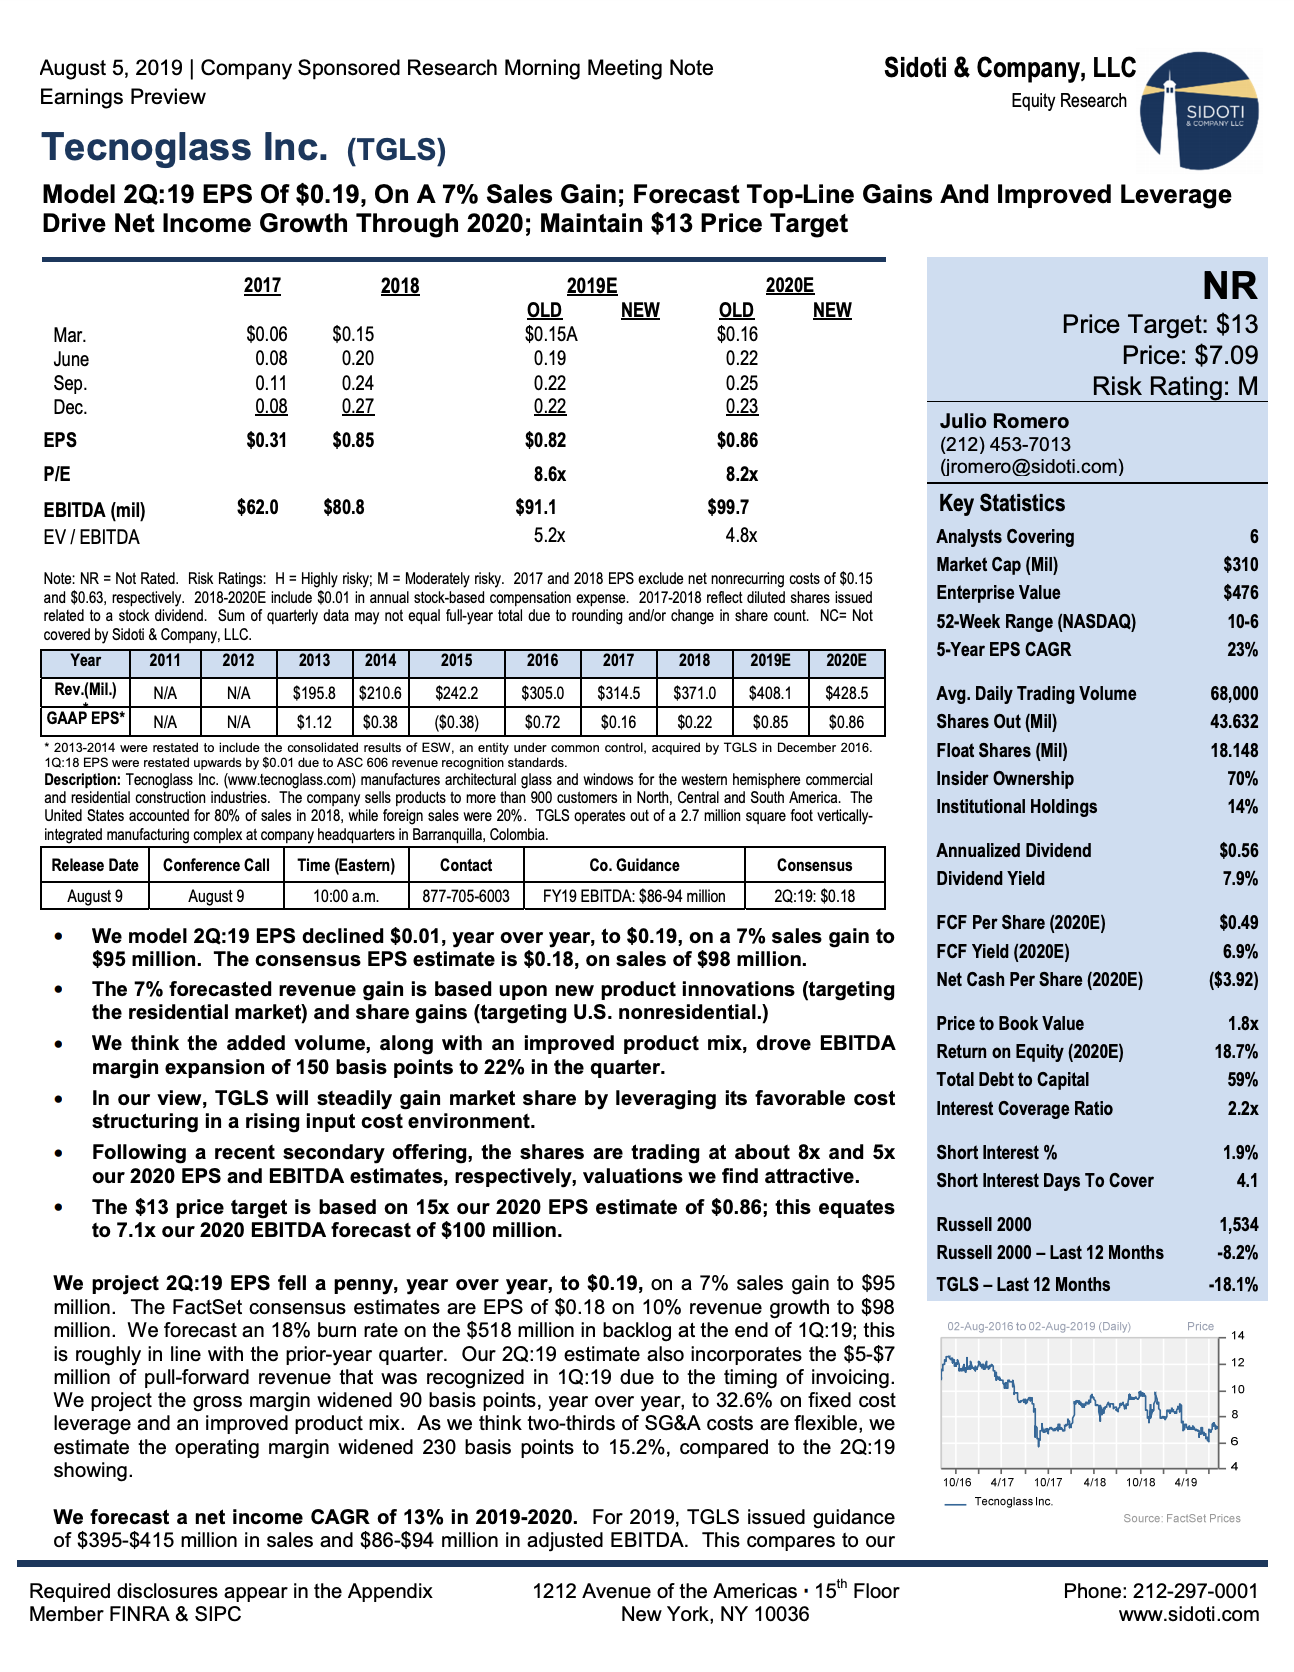 Earnings Preview: August 5, 2019